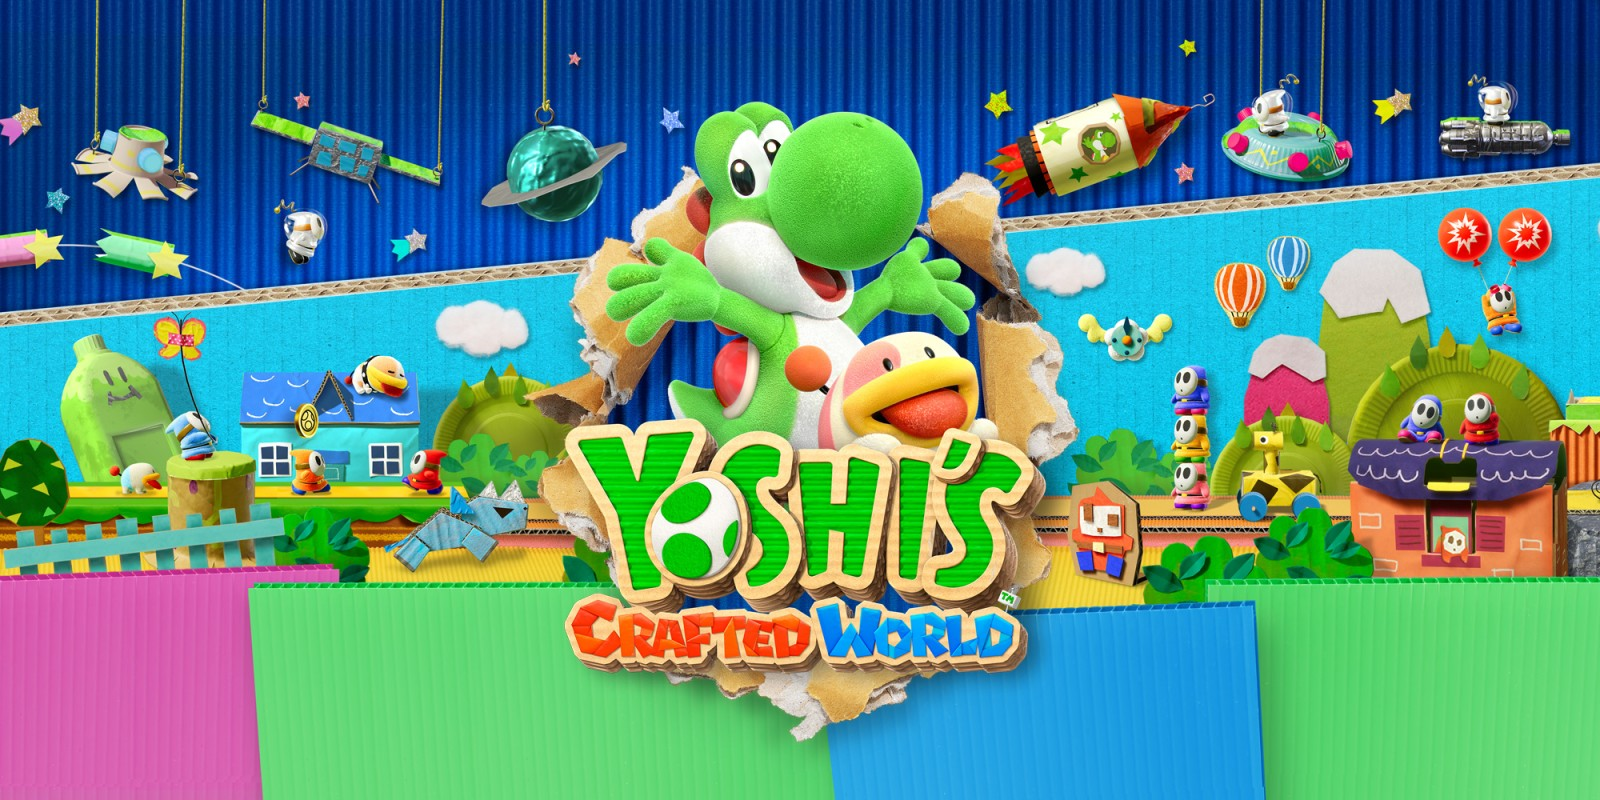 Yoshi's Crafted World Teaser Site